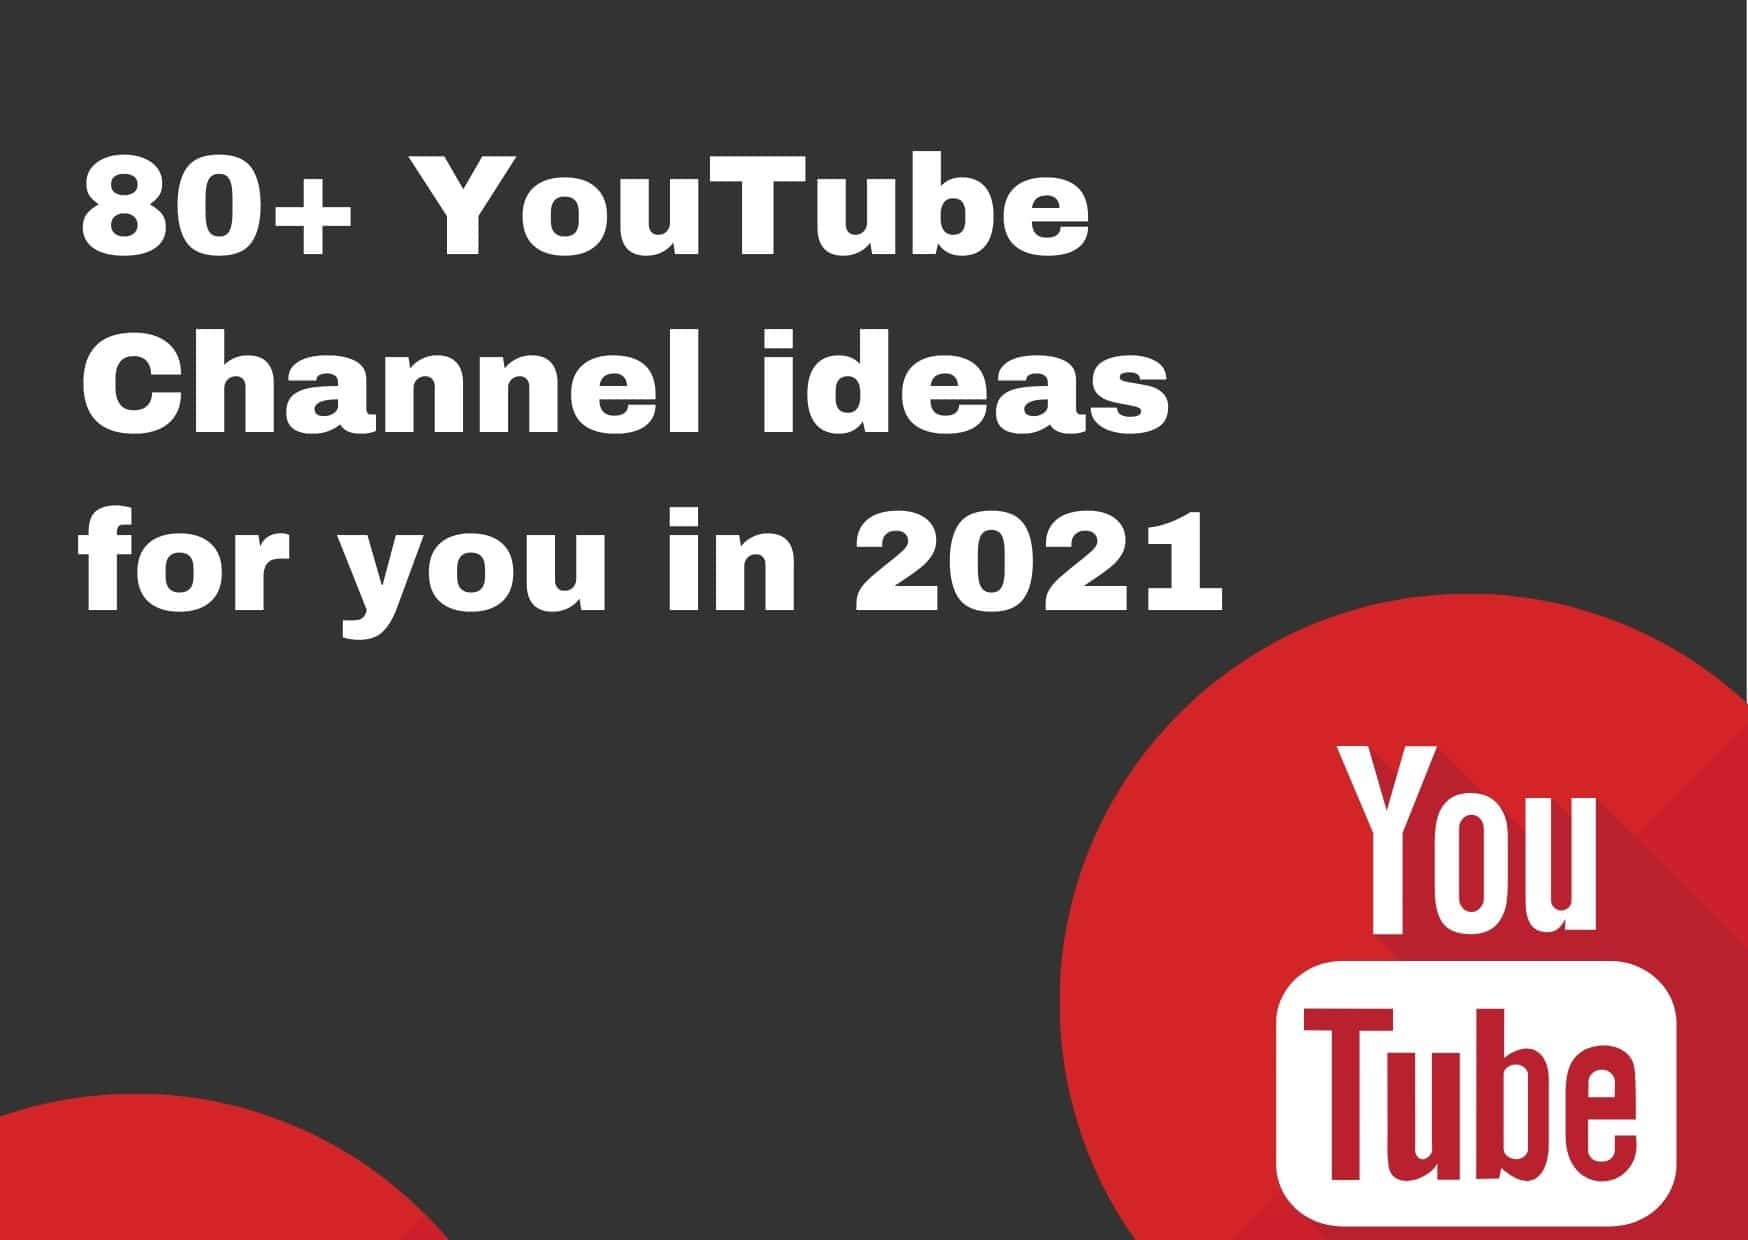 Latest 80+ YouTube Channel ideas for you in 2021